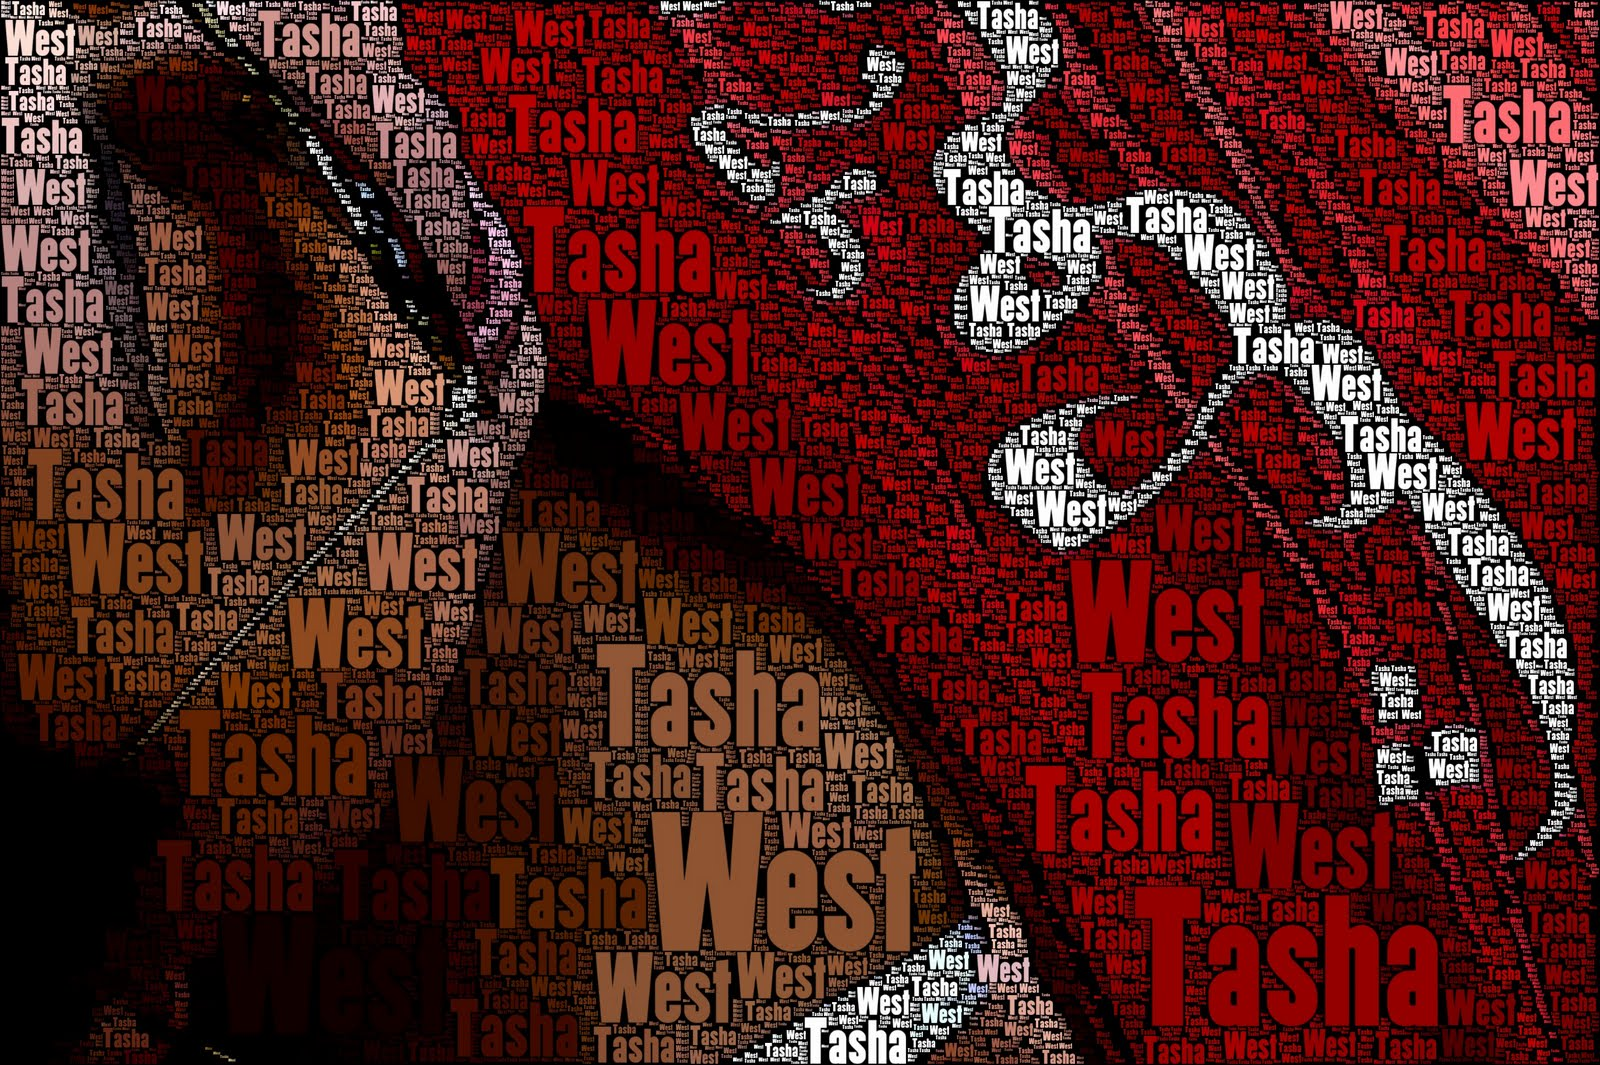 Tasha West